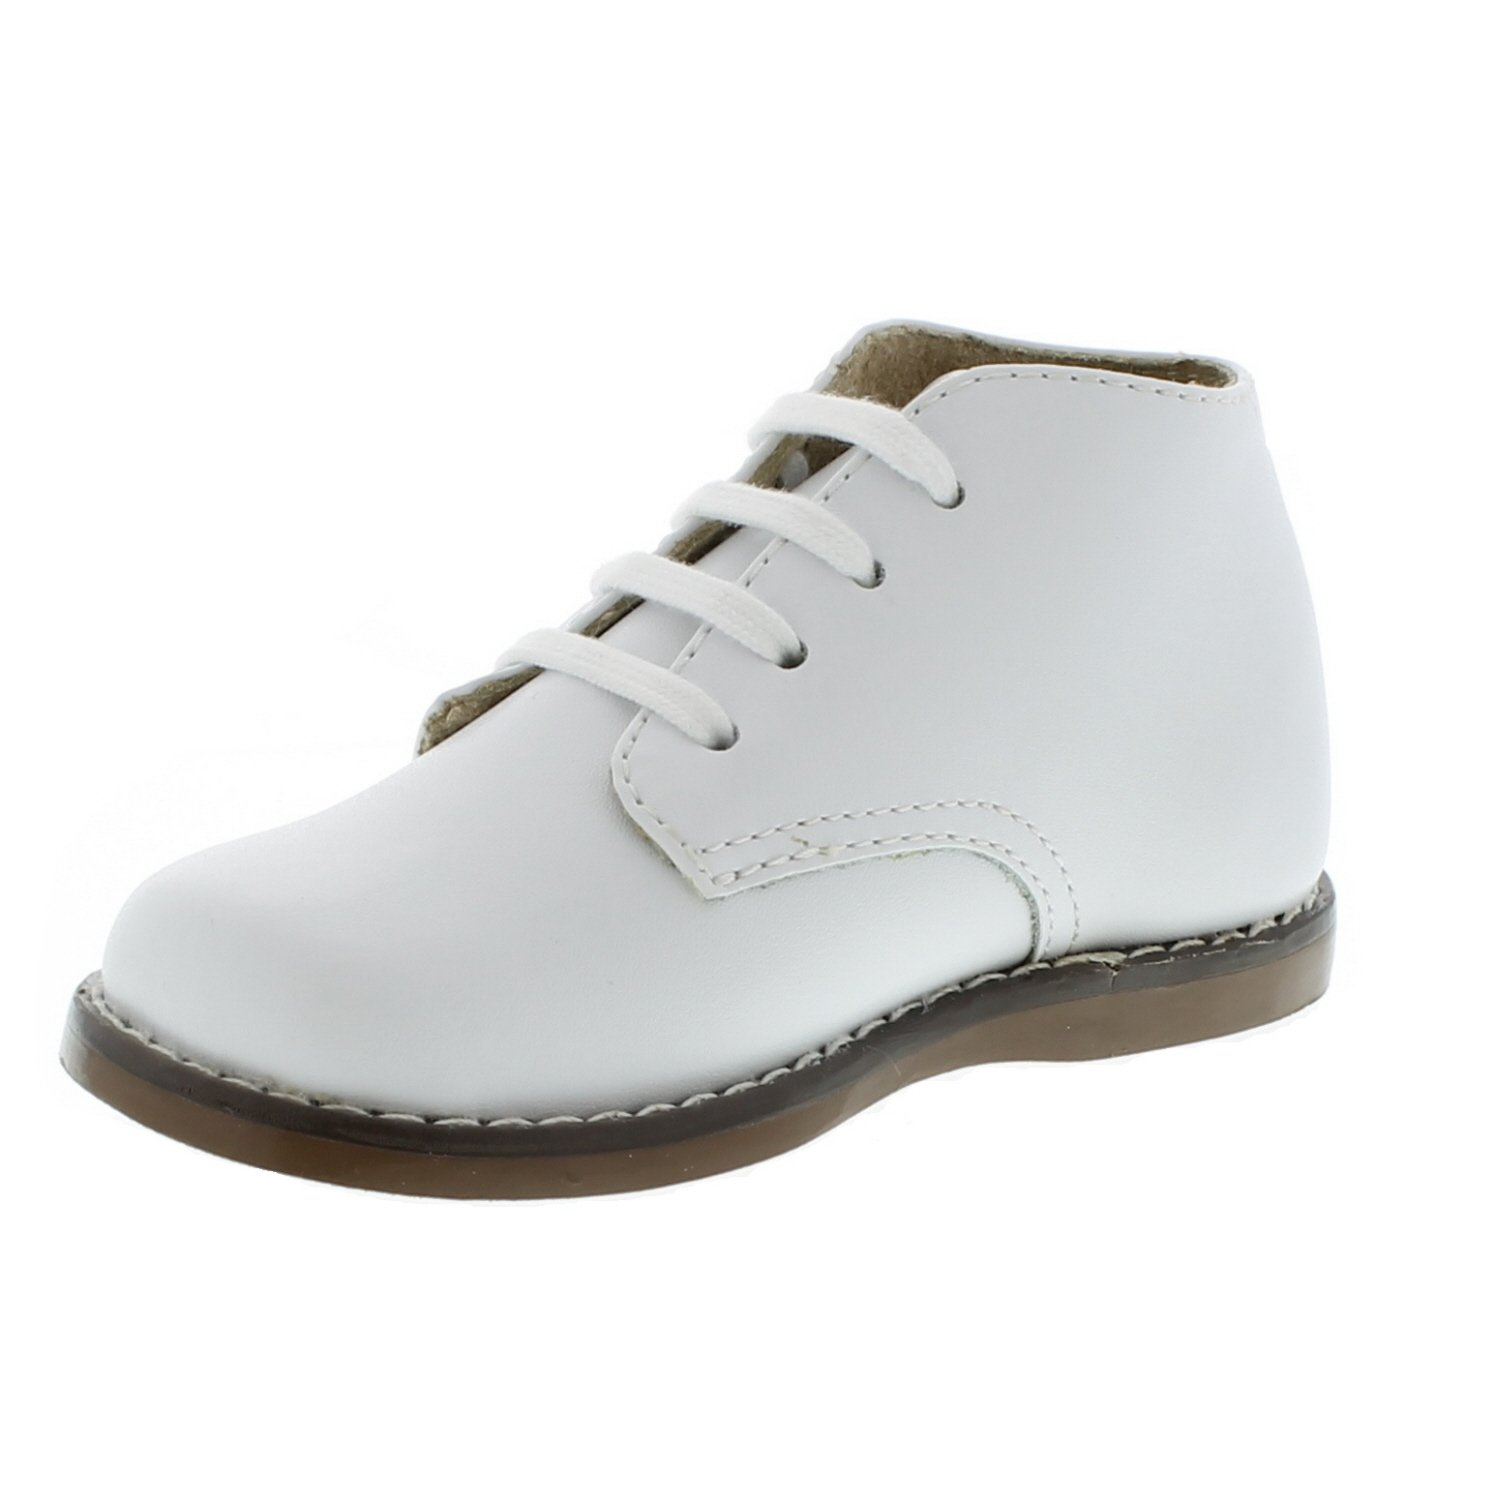 FootMates Unisex Todd 3 (Infant/Toddler) White Oxford 4 Toddler M/W by FOOTMATES (Image #5)